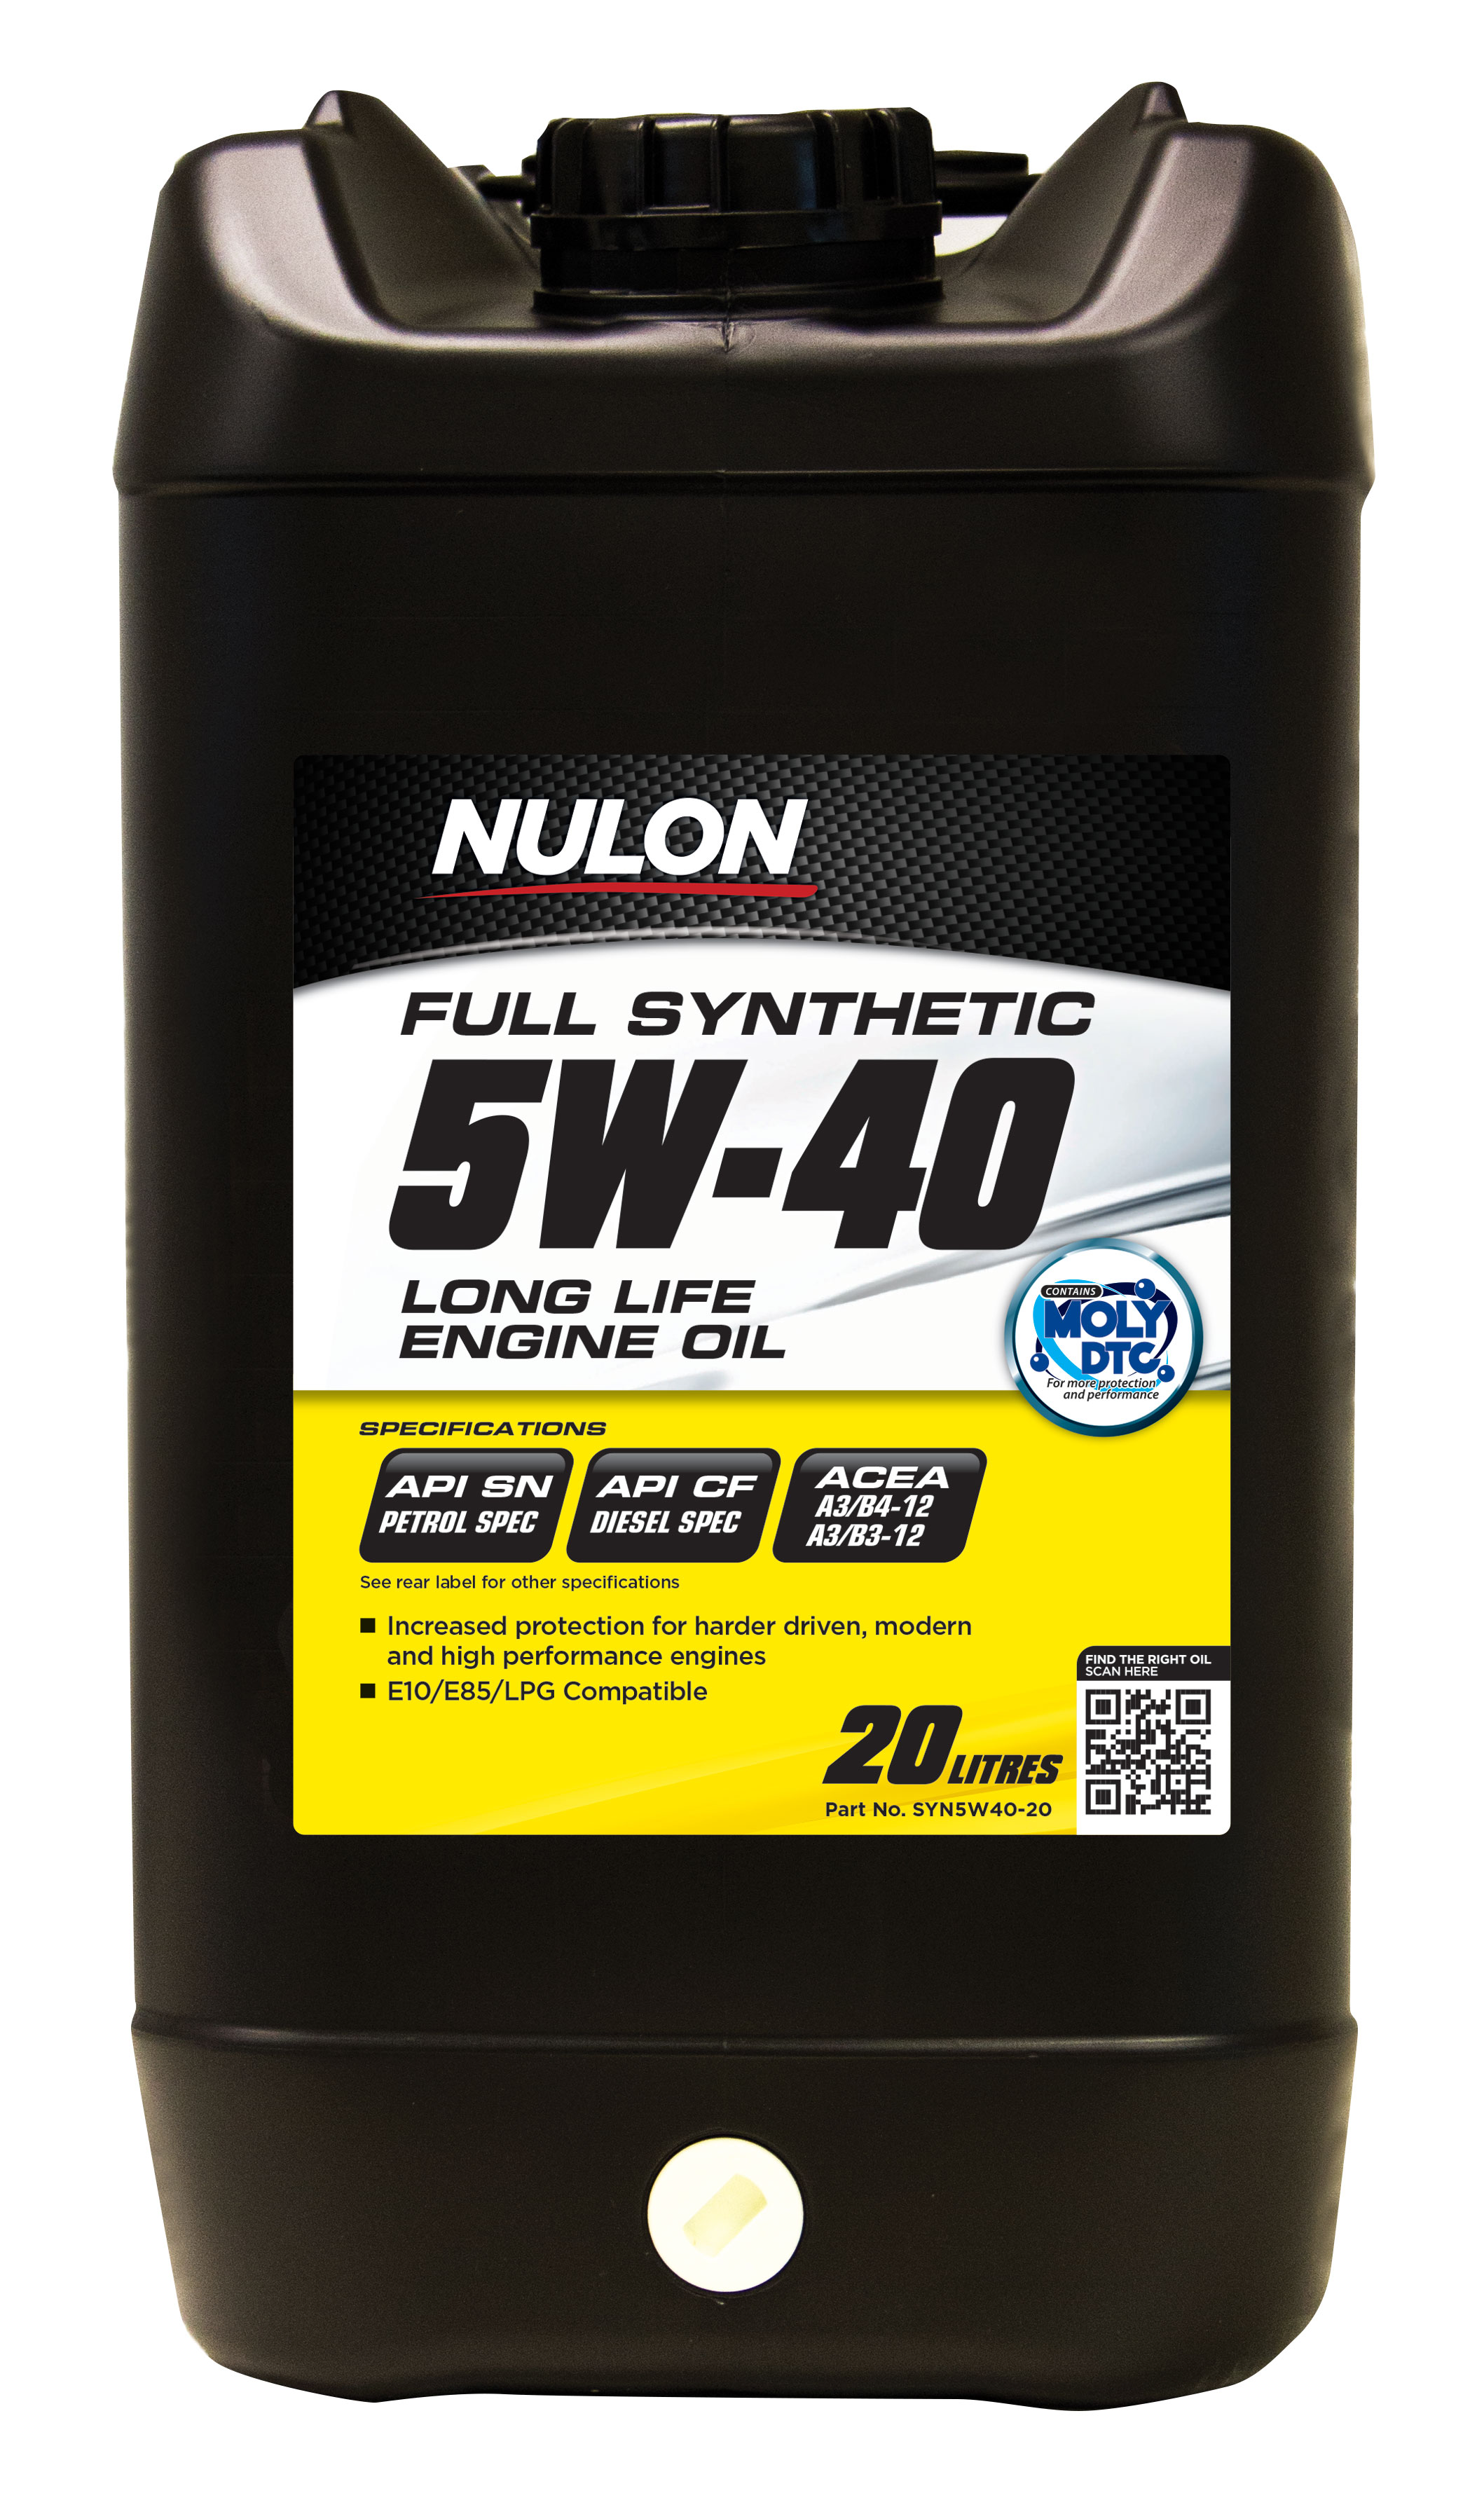 Nulon Full Synthetic 5w40 Long Life Engine Oil 20l Syn5w40